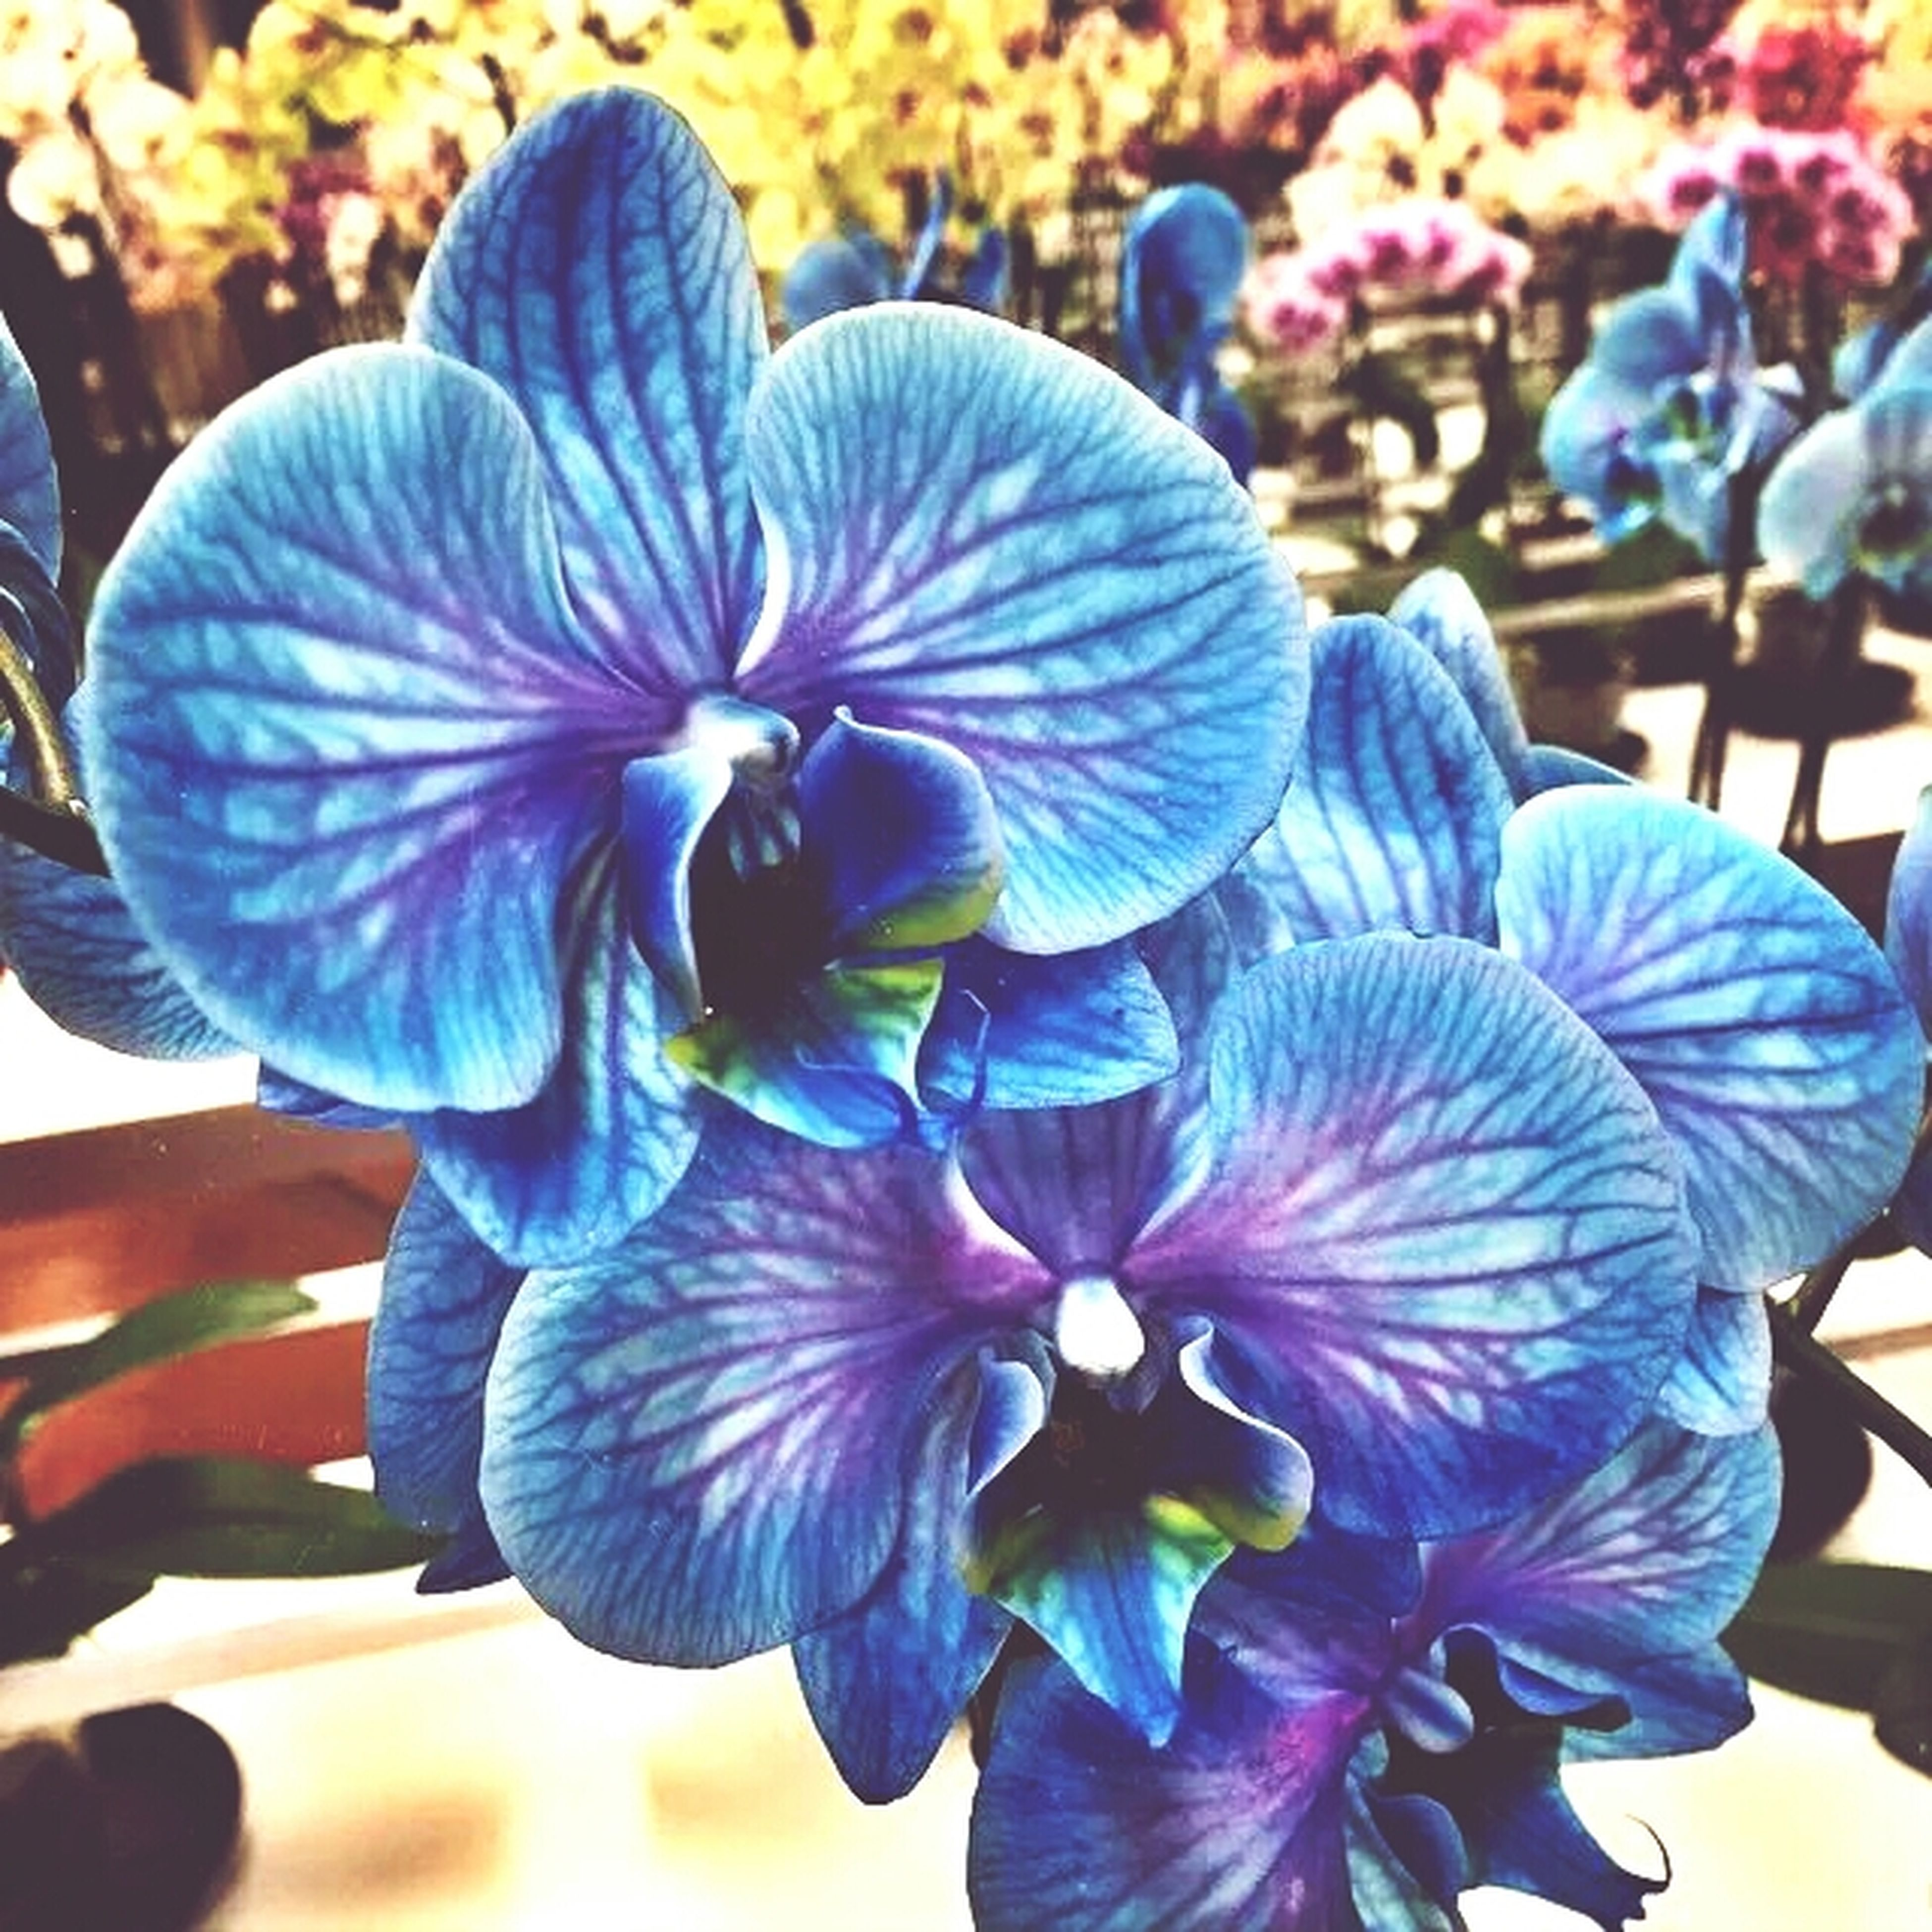 flower, petal, flower head, freshness, fragility, purple, growth, beauty in nature, close-up, blooming, nature, blue, plant, focus on foreground, in bloom, orchid, blossom, stamen, pollen, day